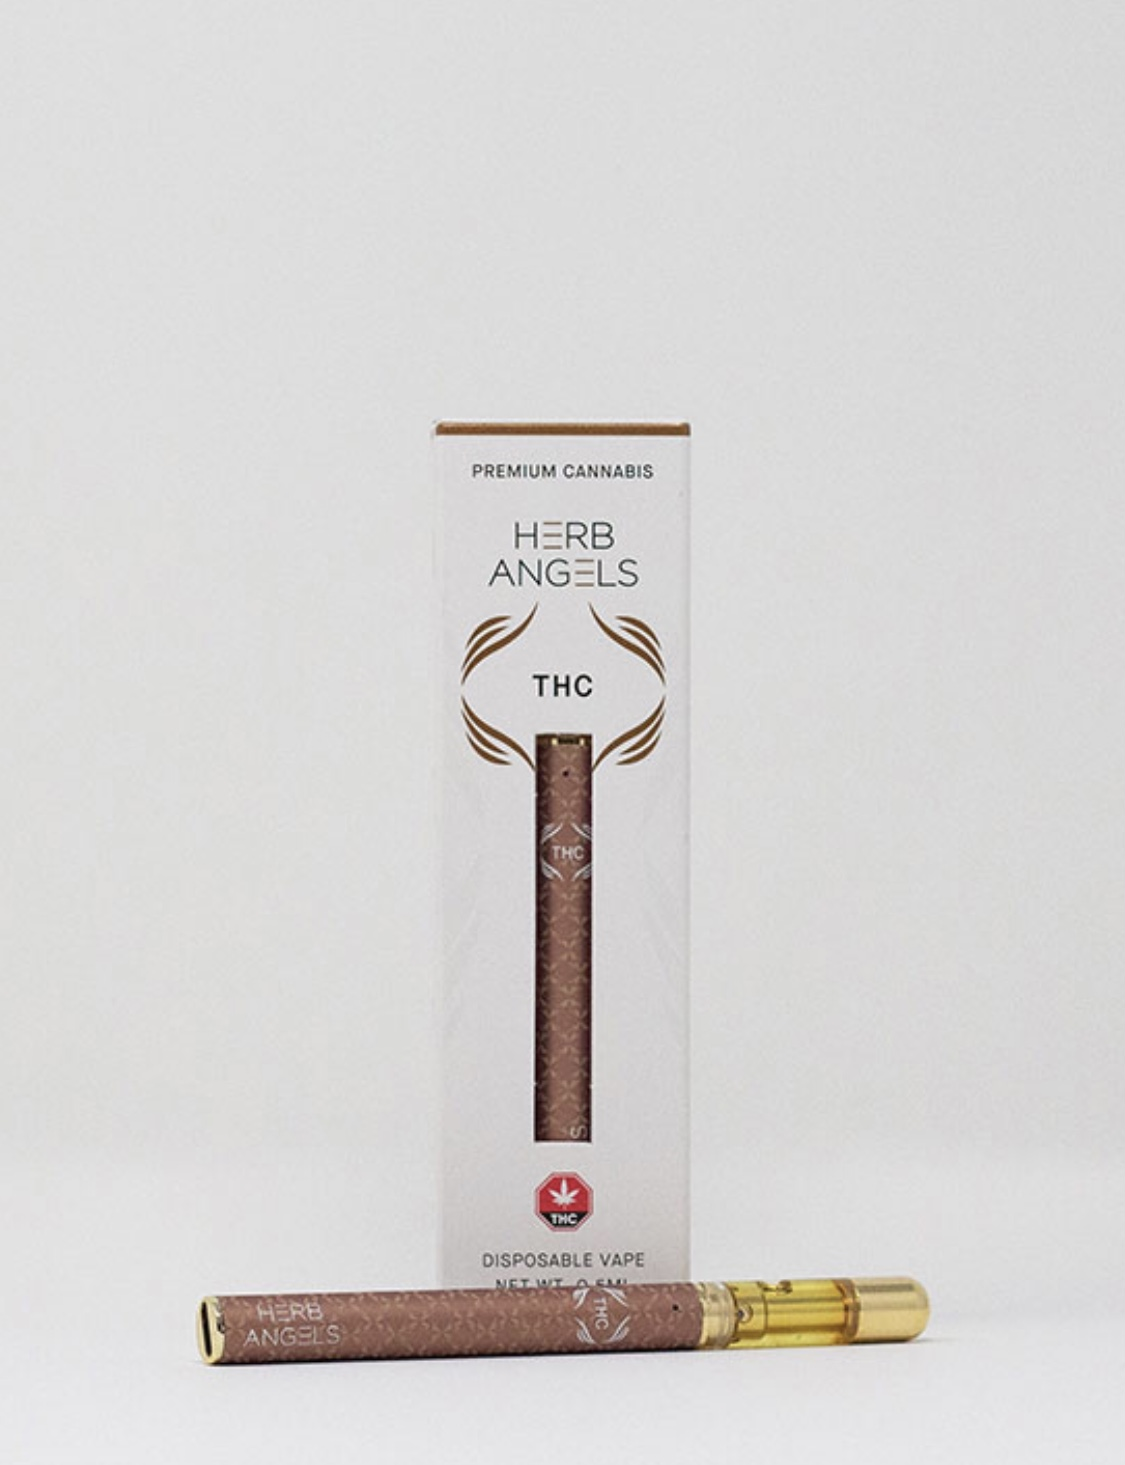 *New* Herbs Angels THC DISPOSABLE VAPE